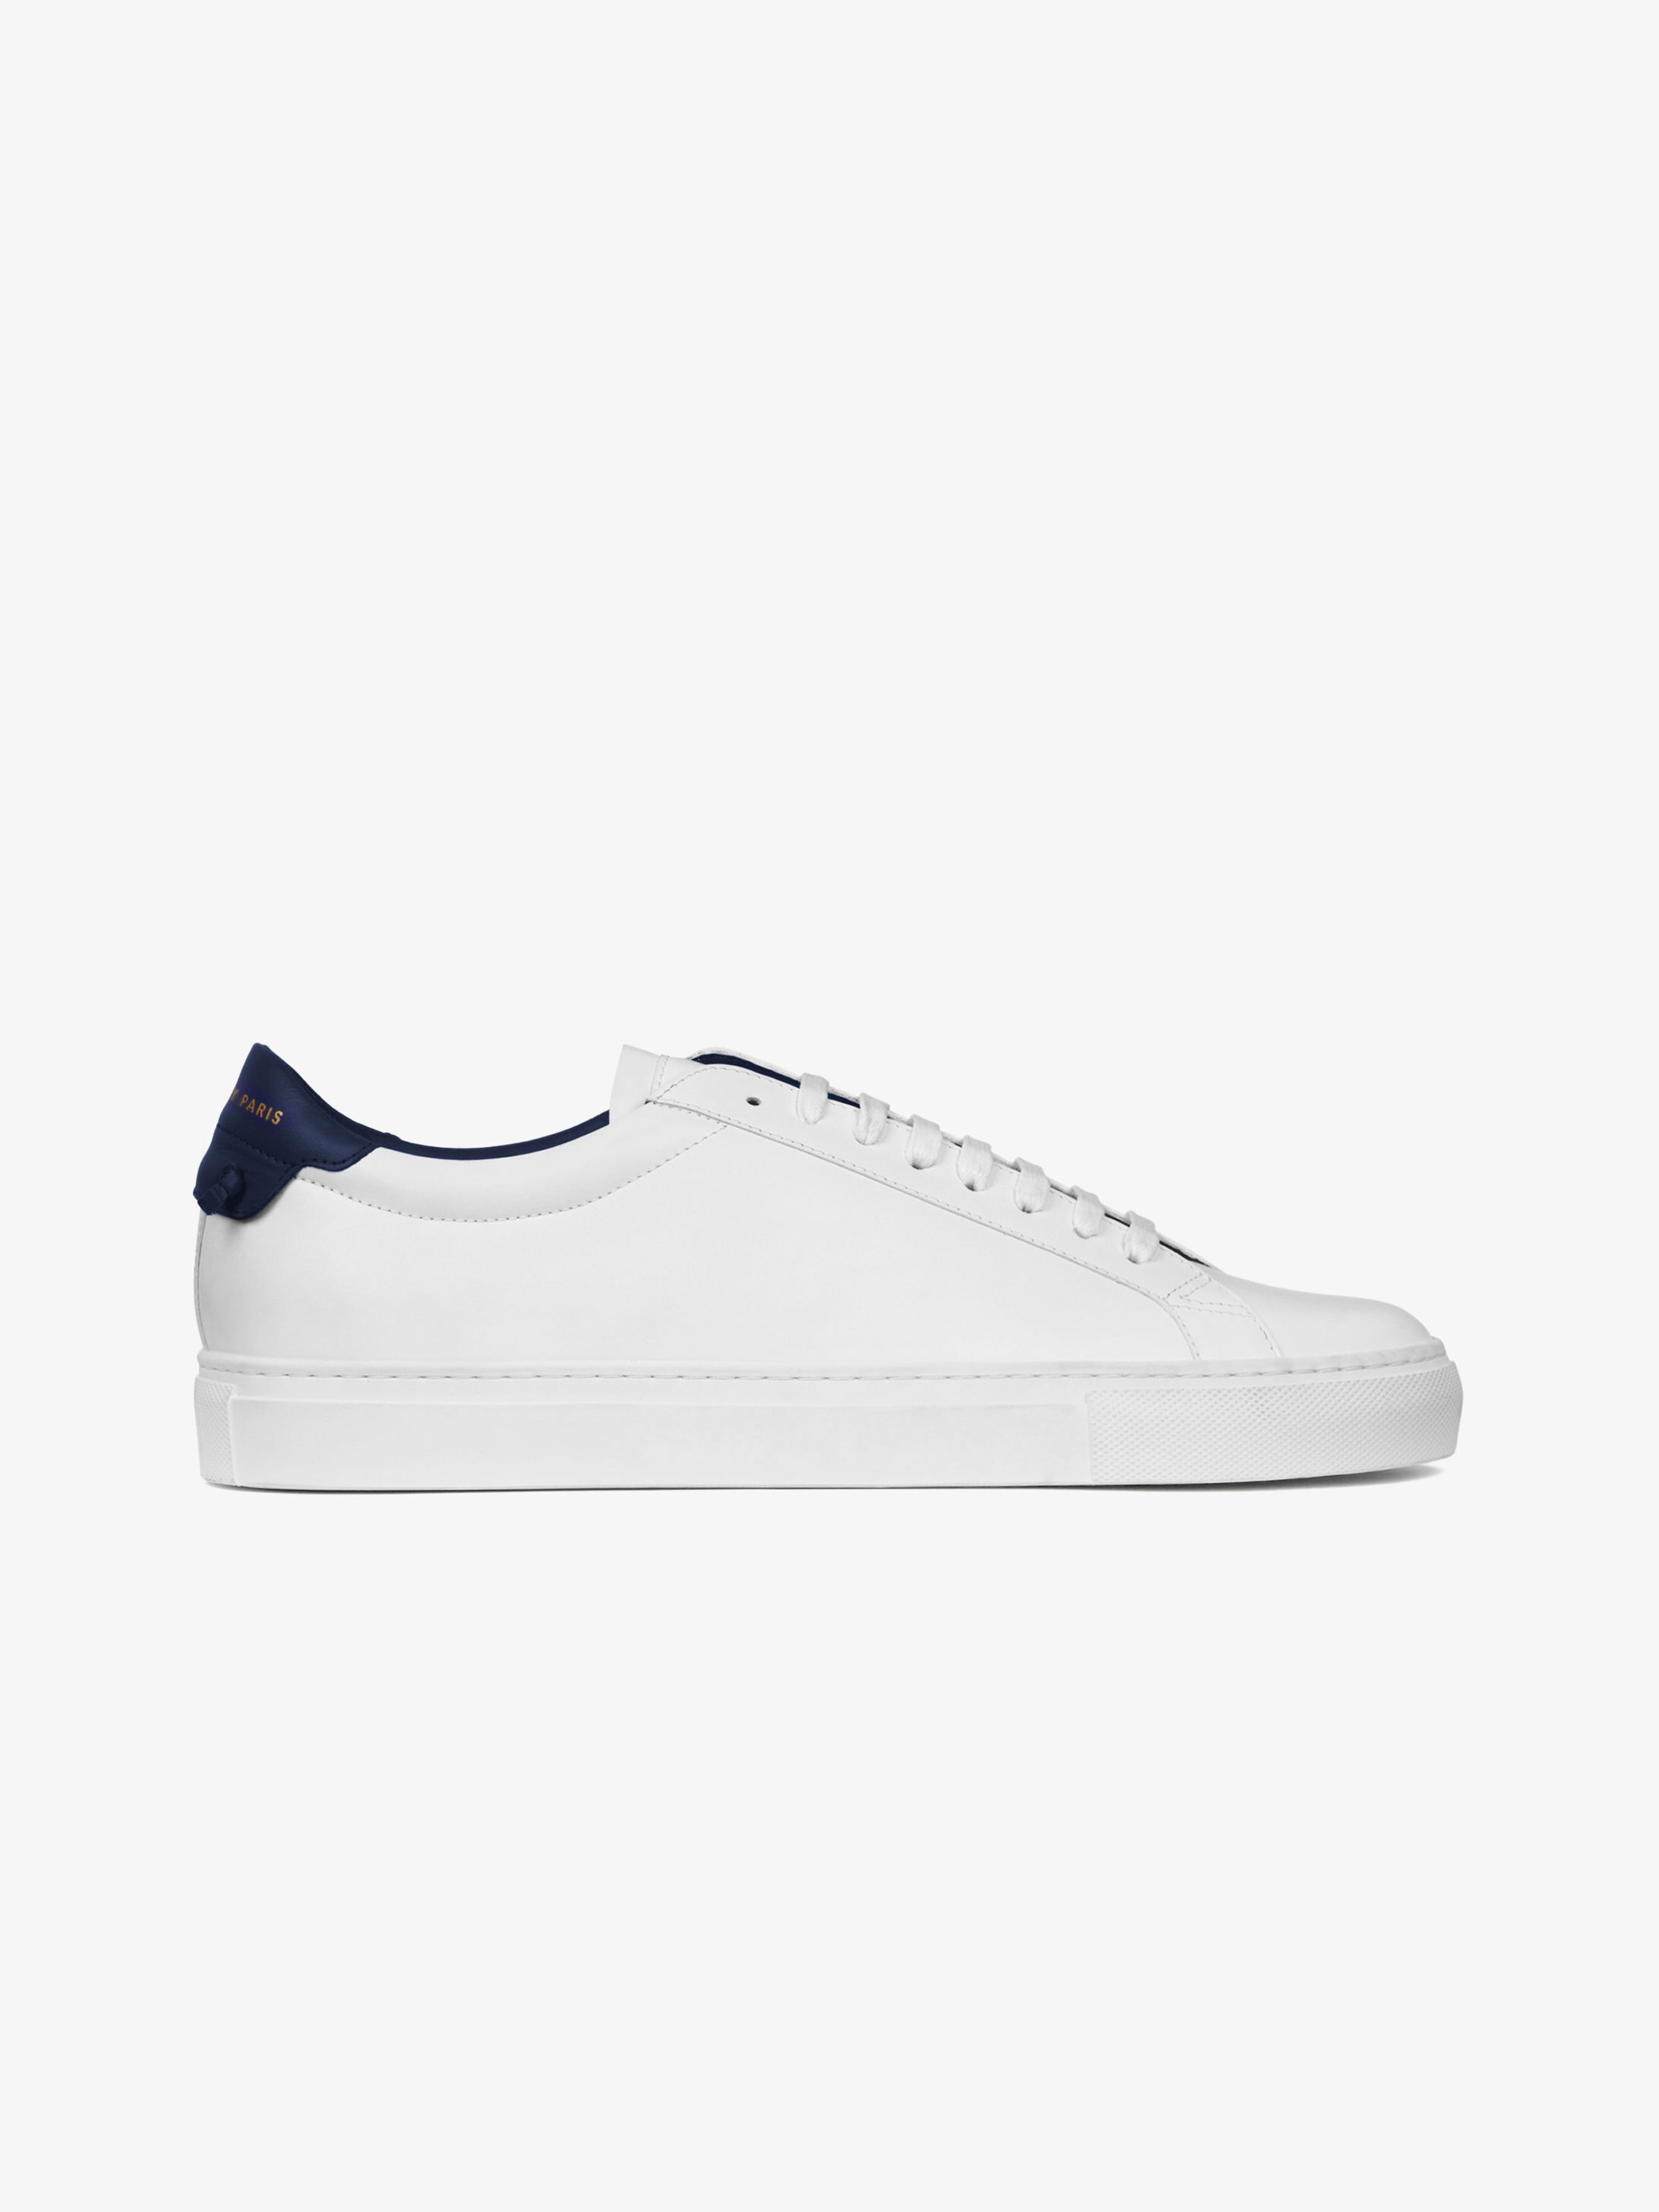 7f091c2244ff Men s Sneakers collection by Givenchy.